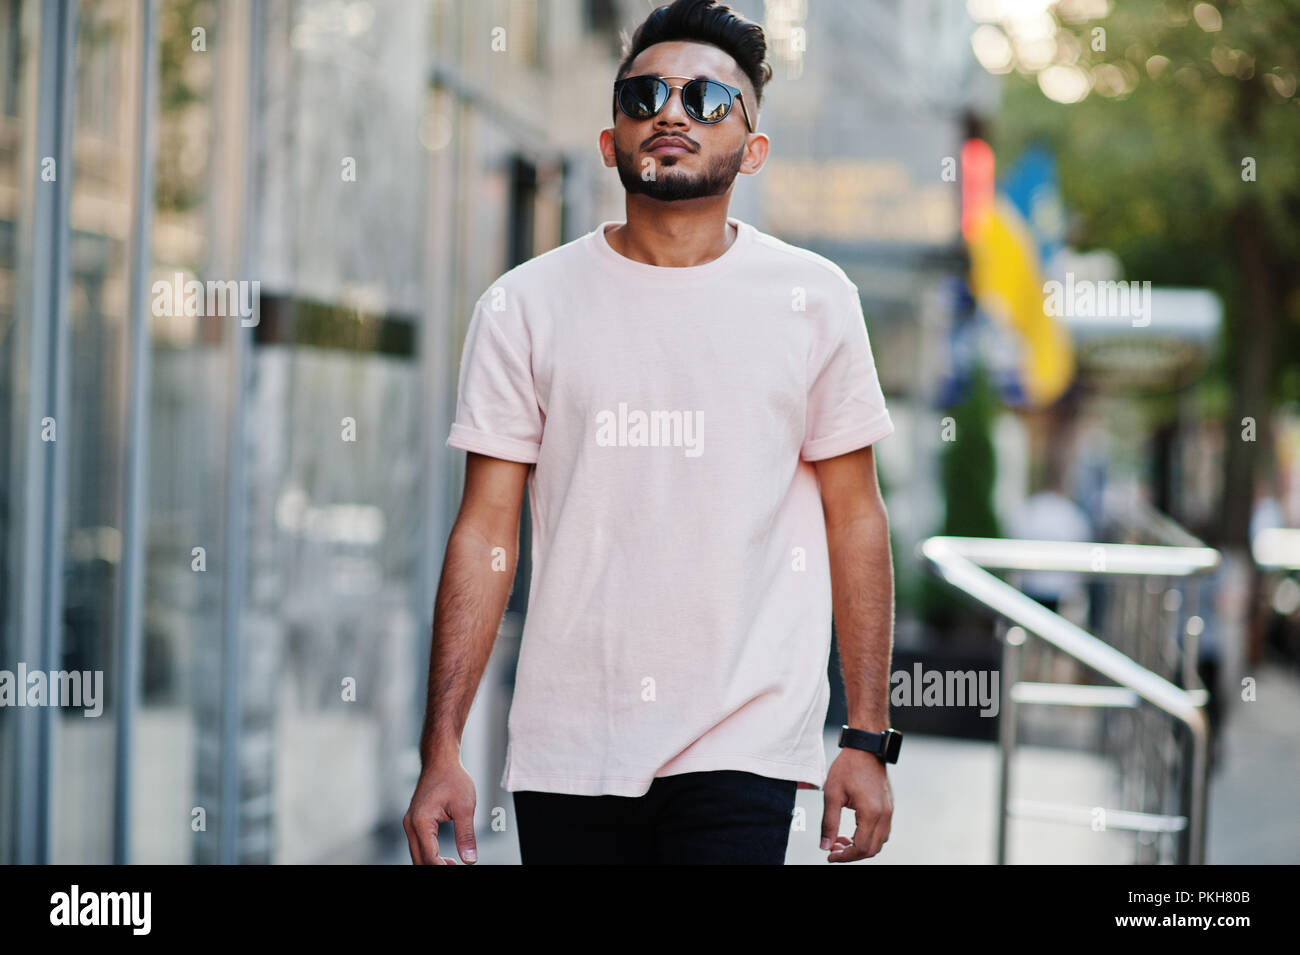 2019 year for women- Stylish indian boy pic